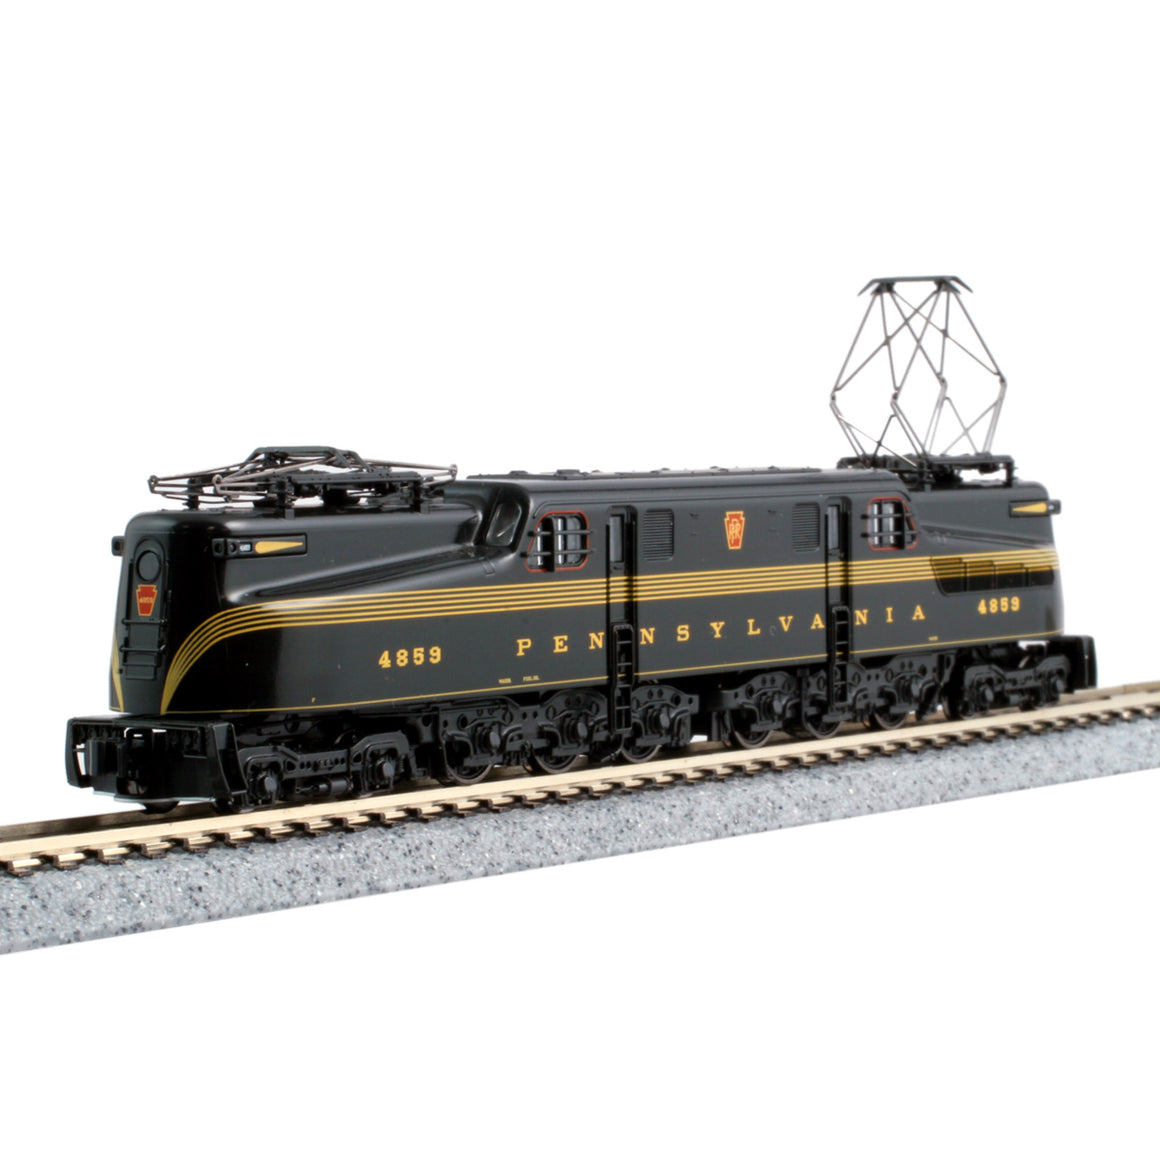 N Scale: GG1 Electric - DCC Ready - PRR Brunswick Green